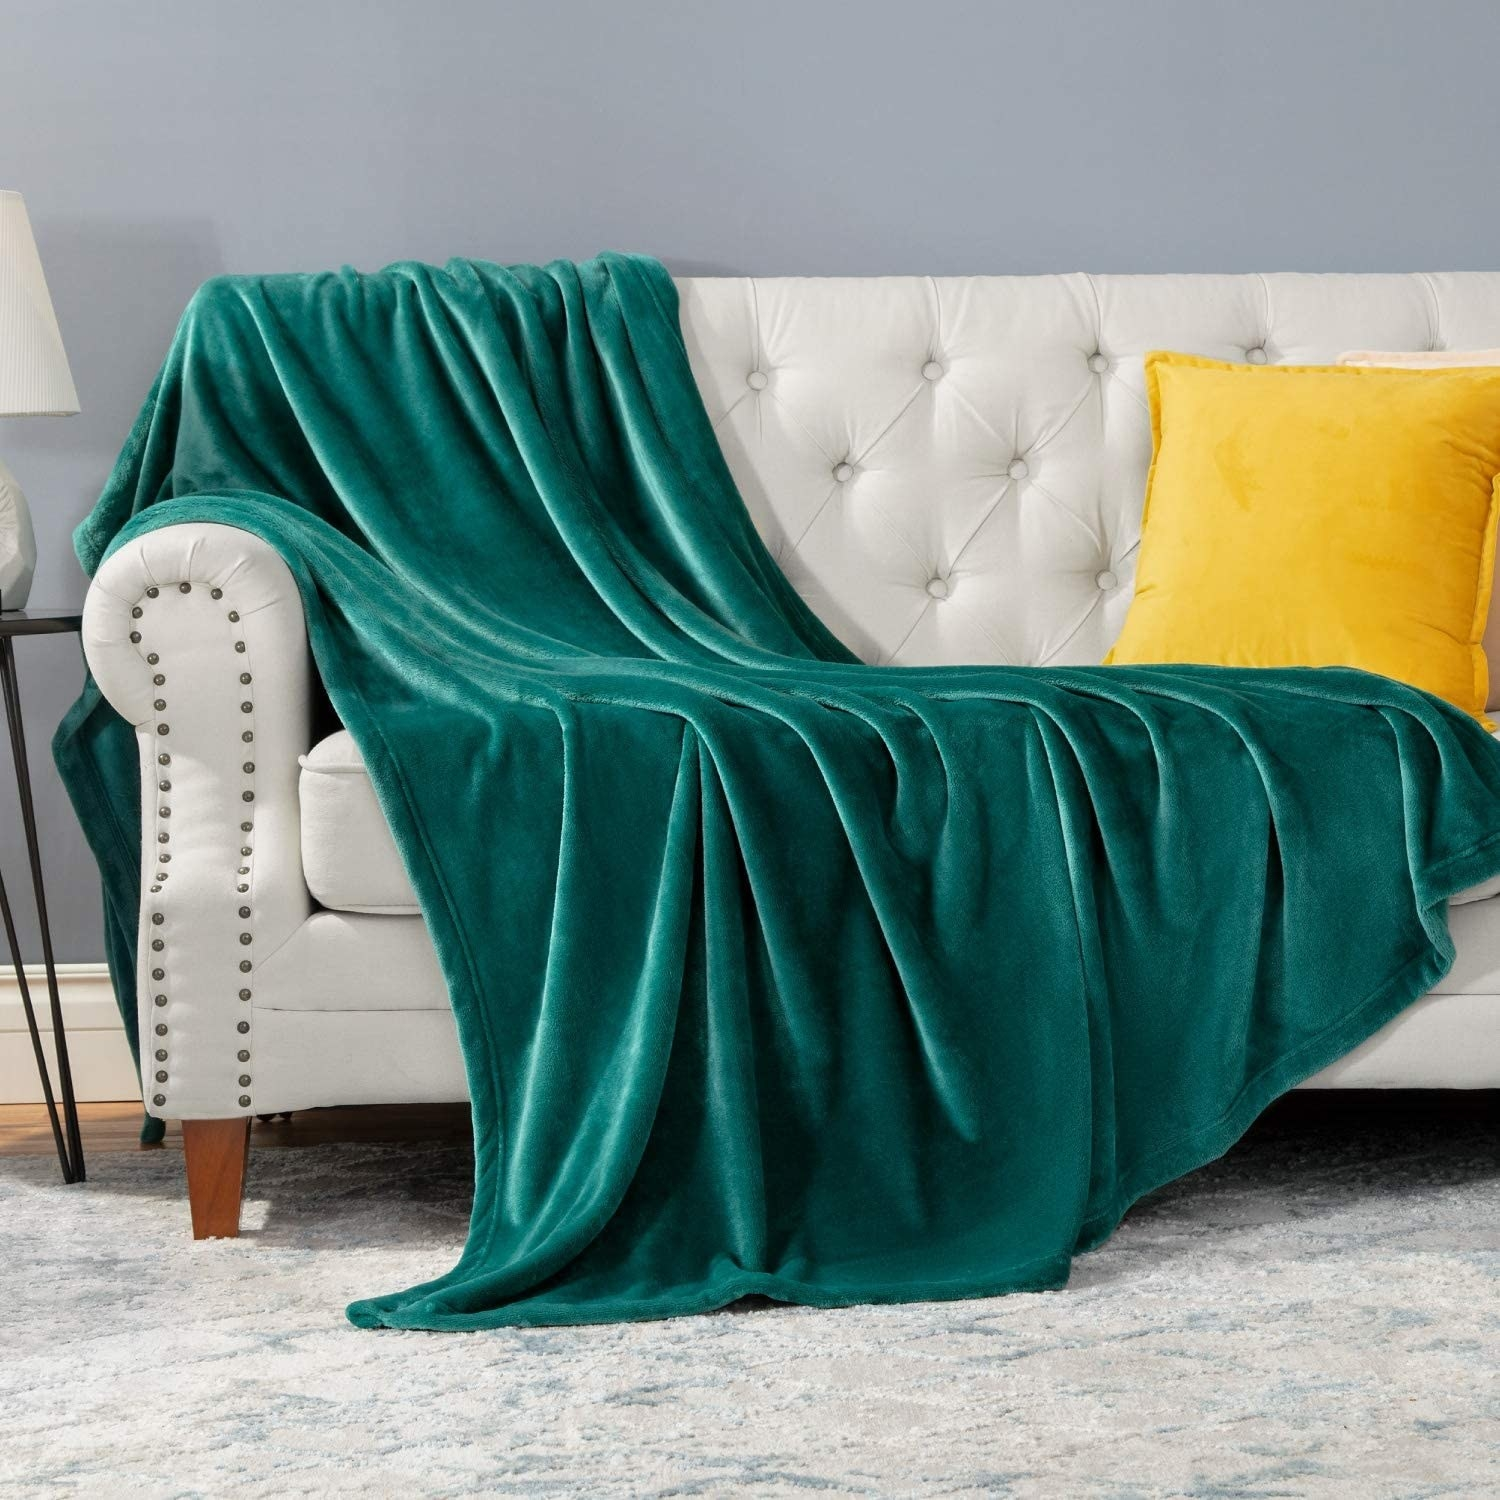 A throw blanket draped over a couch